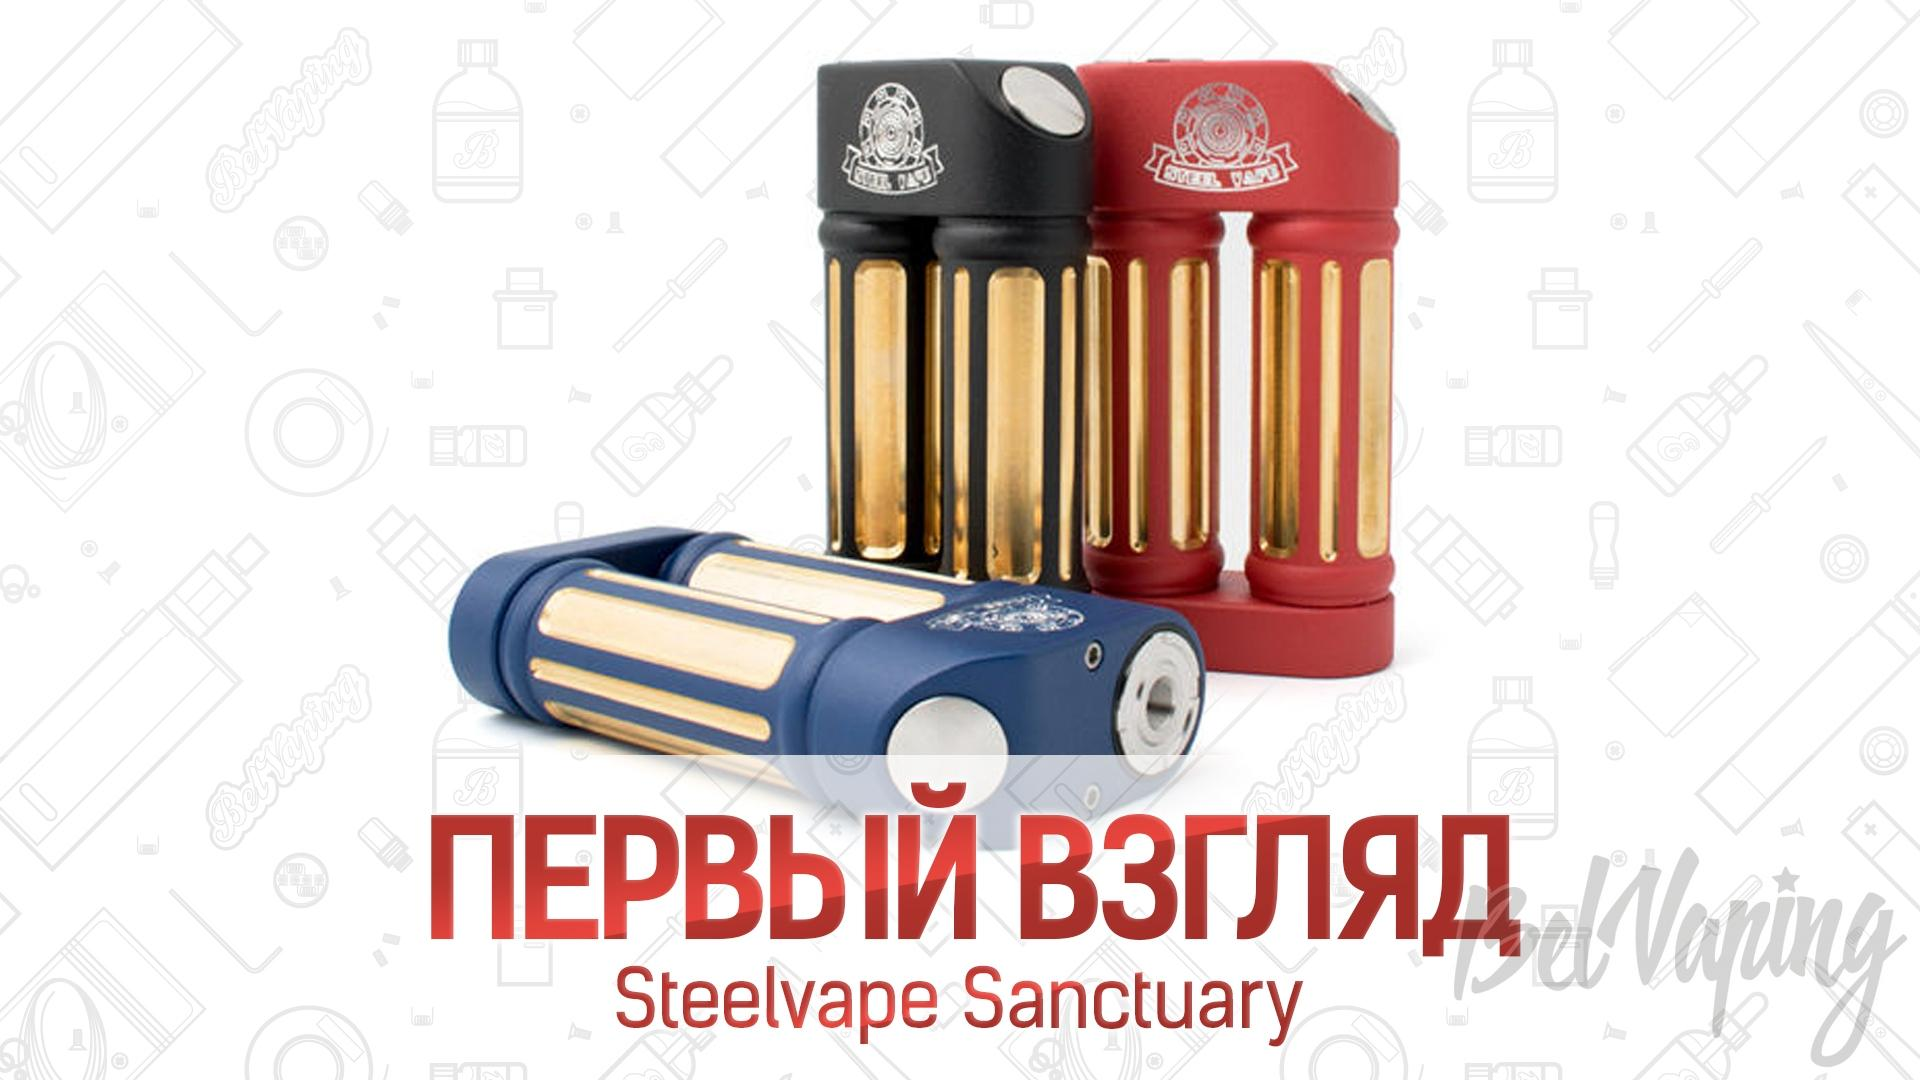 Steelvape Sanctuary Box Mod. Первый взгляд